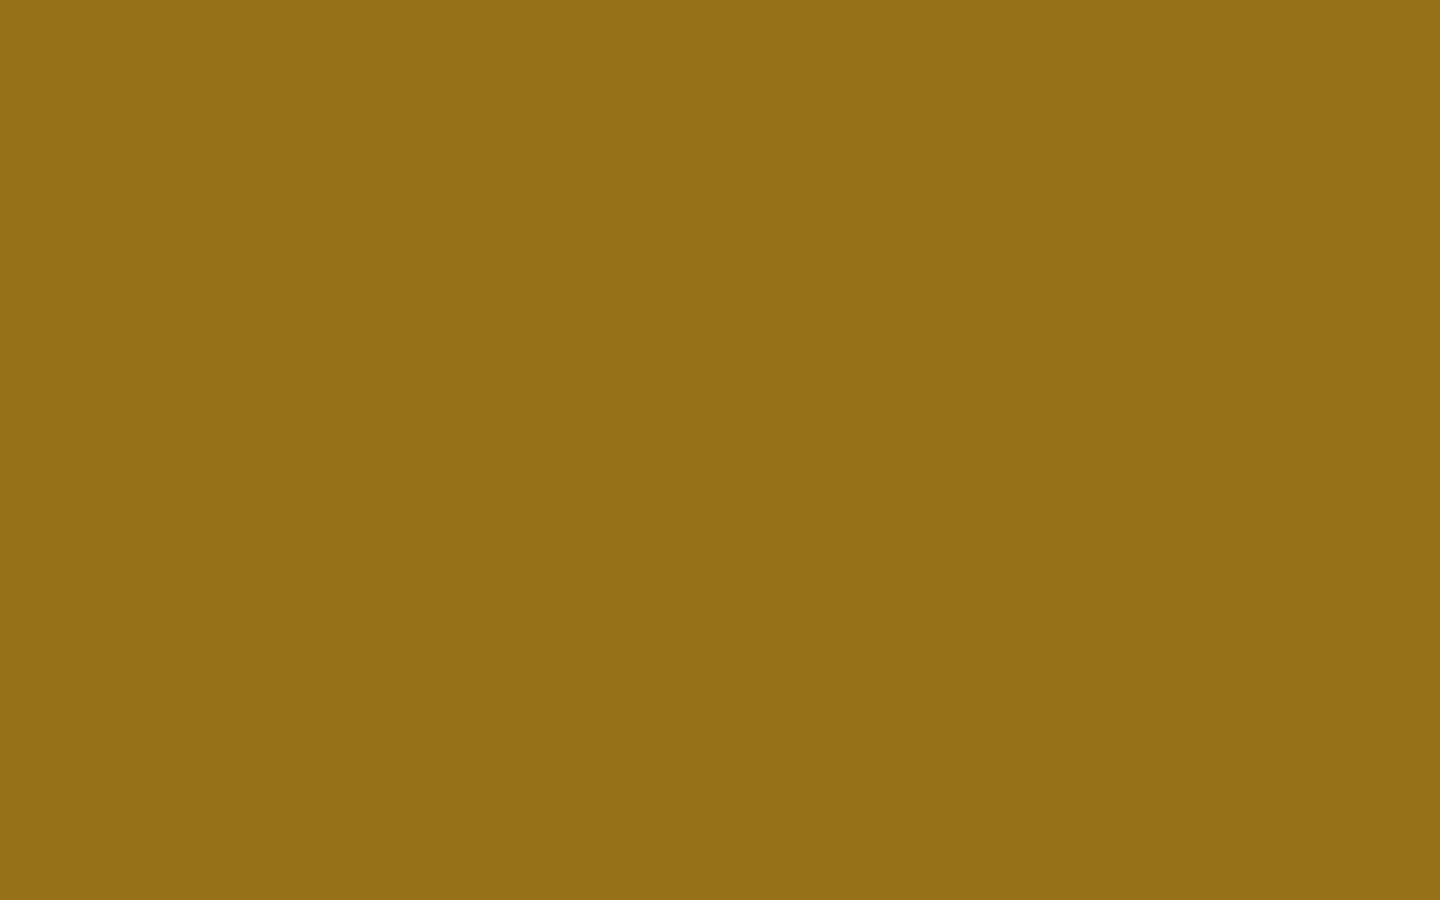 1440x900 Mode Beige Solid Color Background